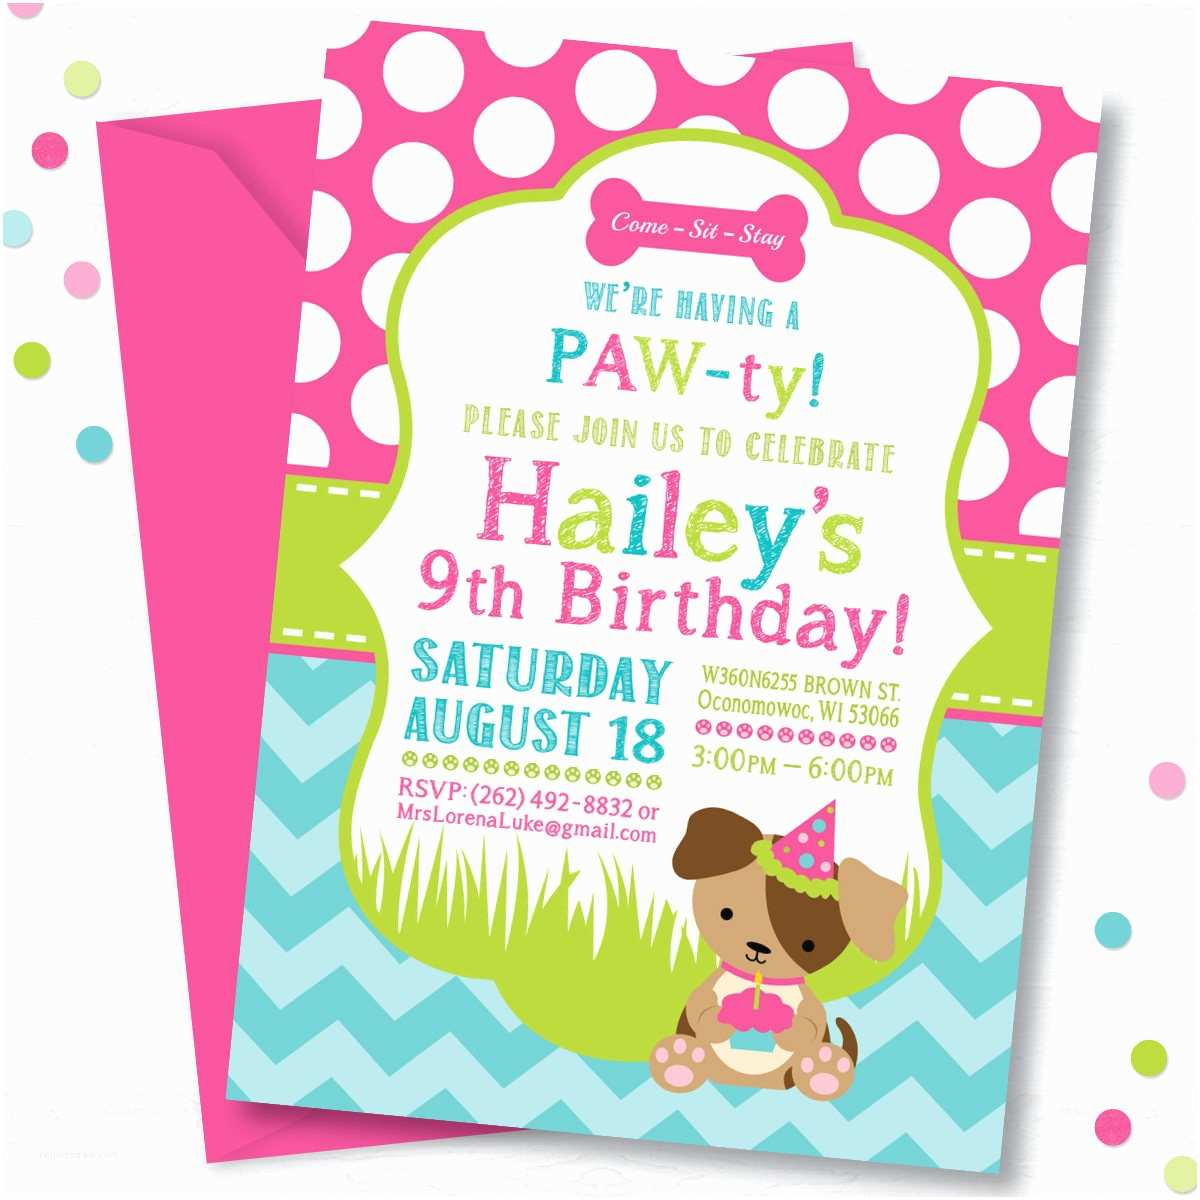 Puppy Party Invitations Puppy Birthday Party Invitation Dog Birthday Party